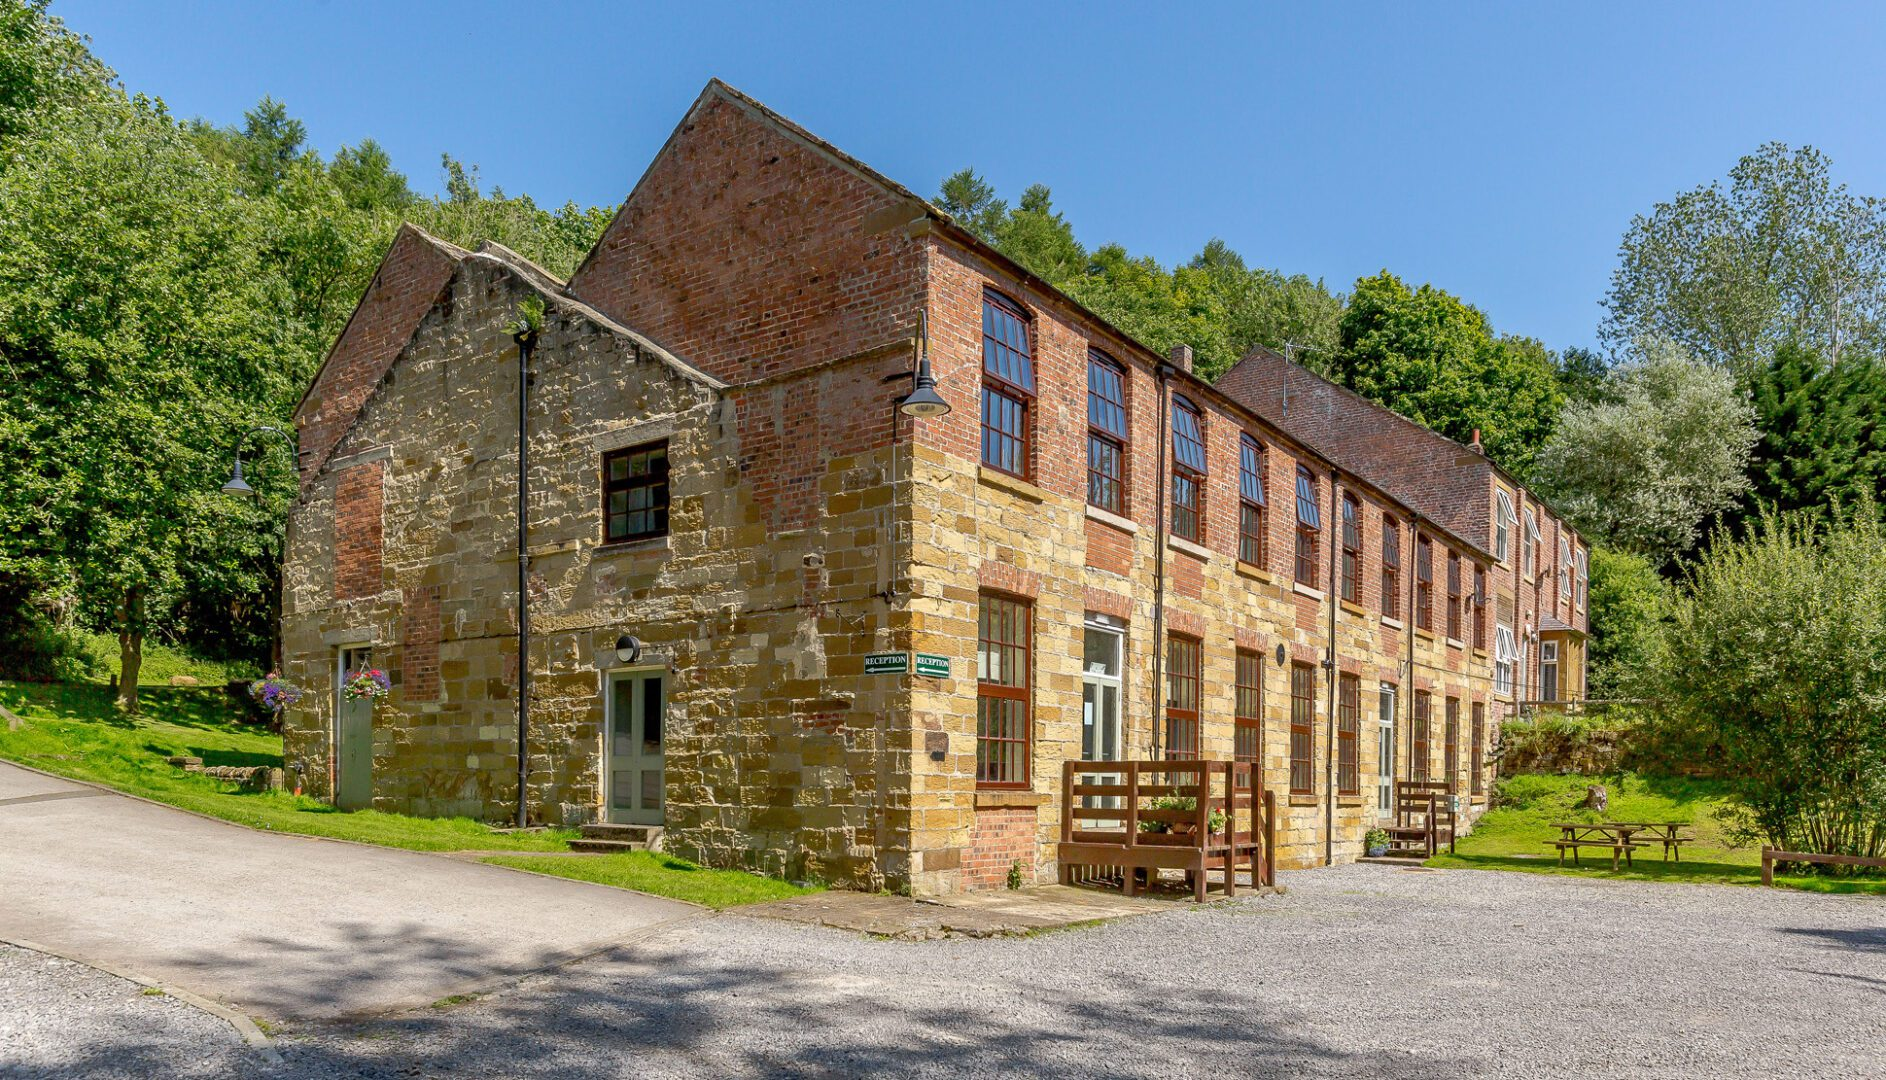 Osmotherley youth hostel at Cote Ghyll Mill